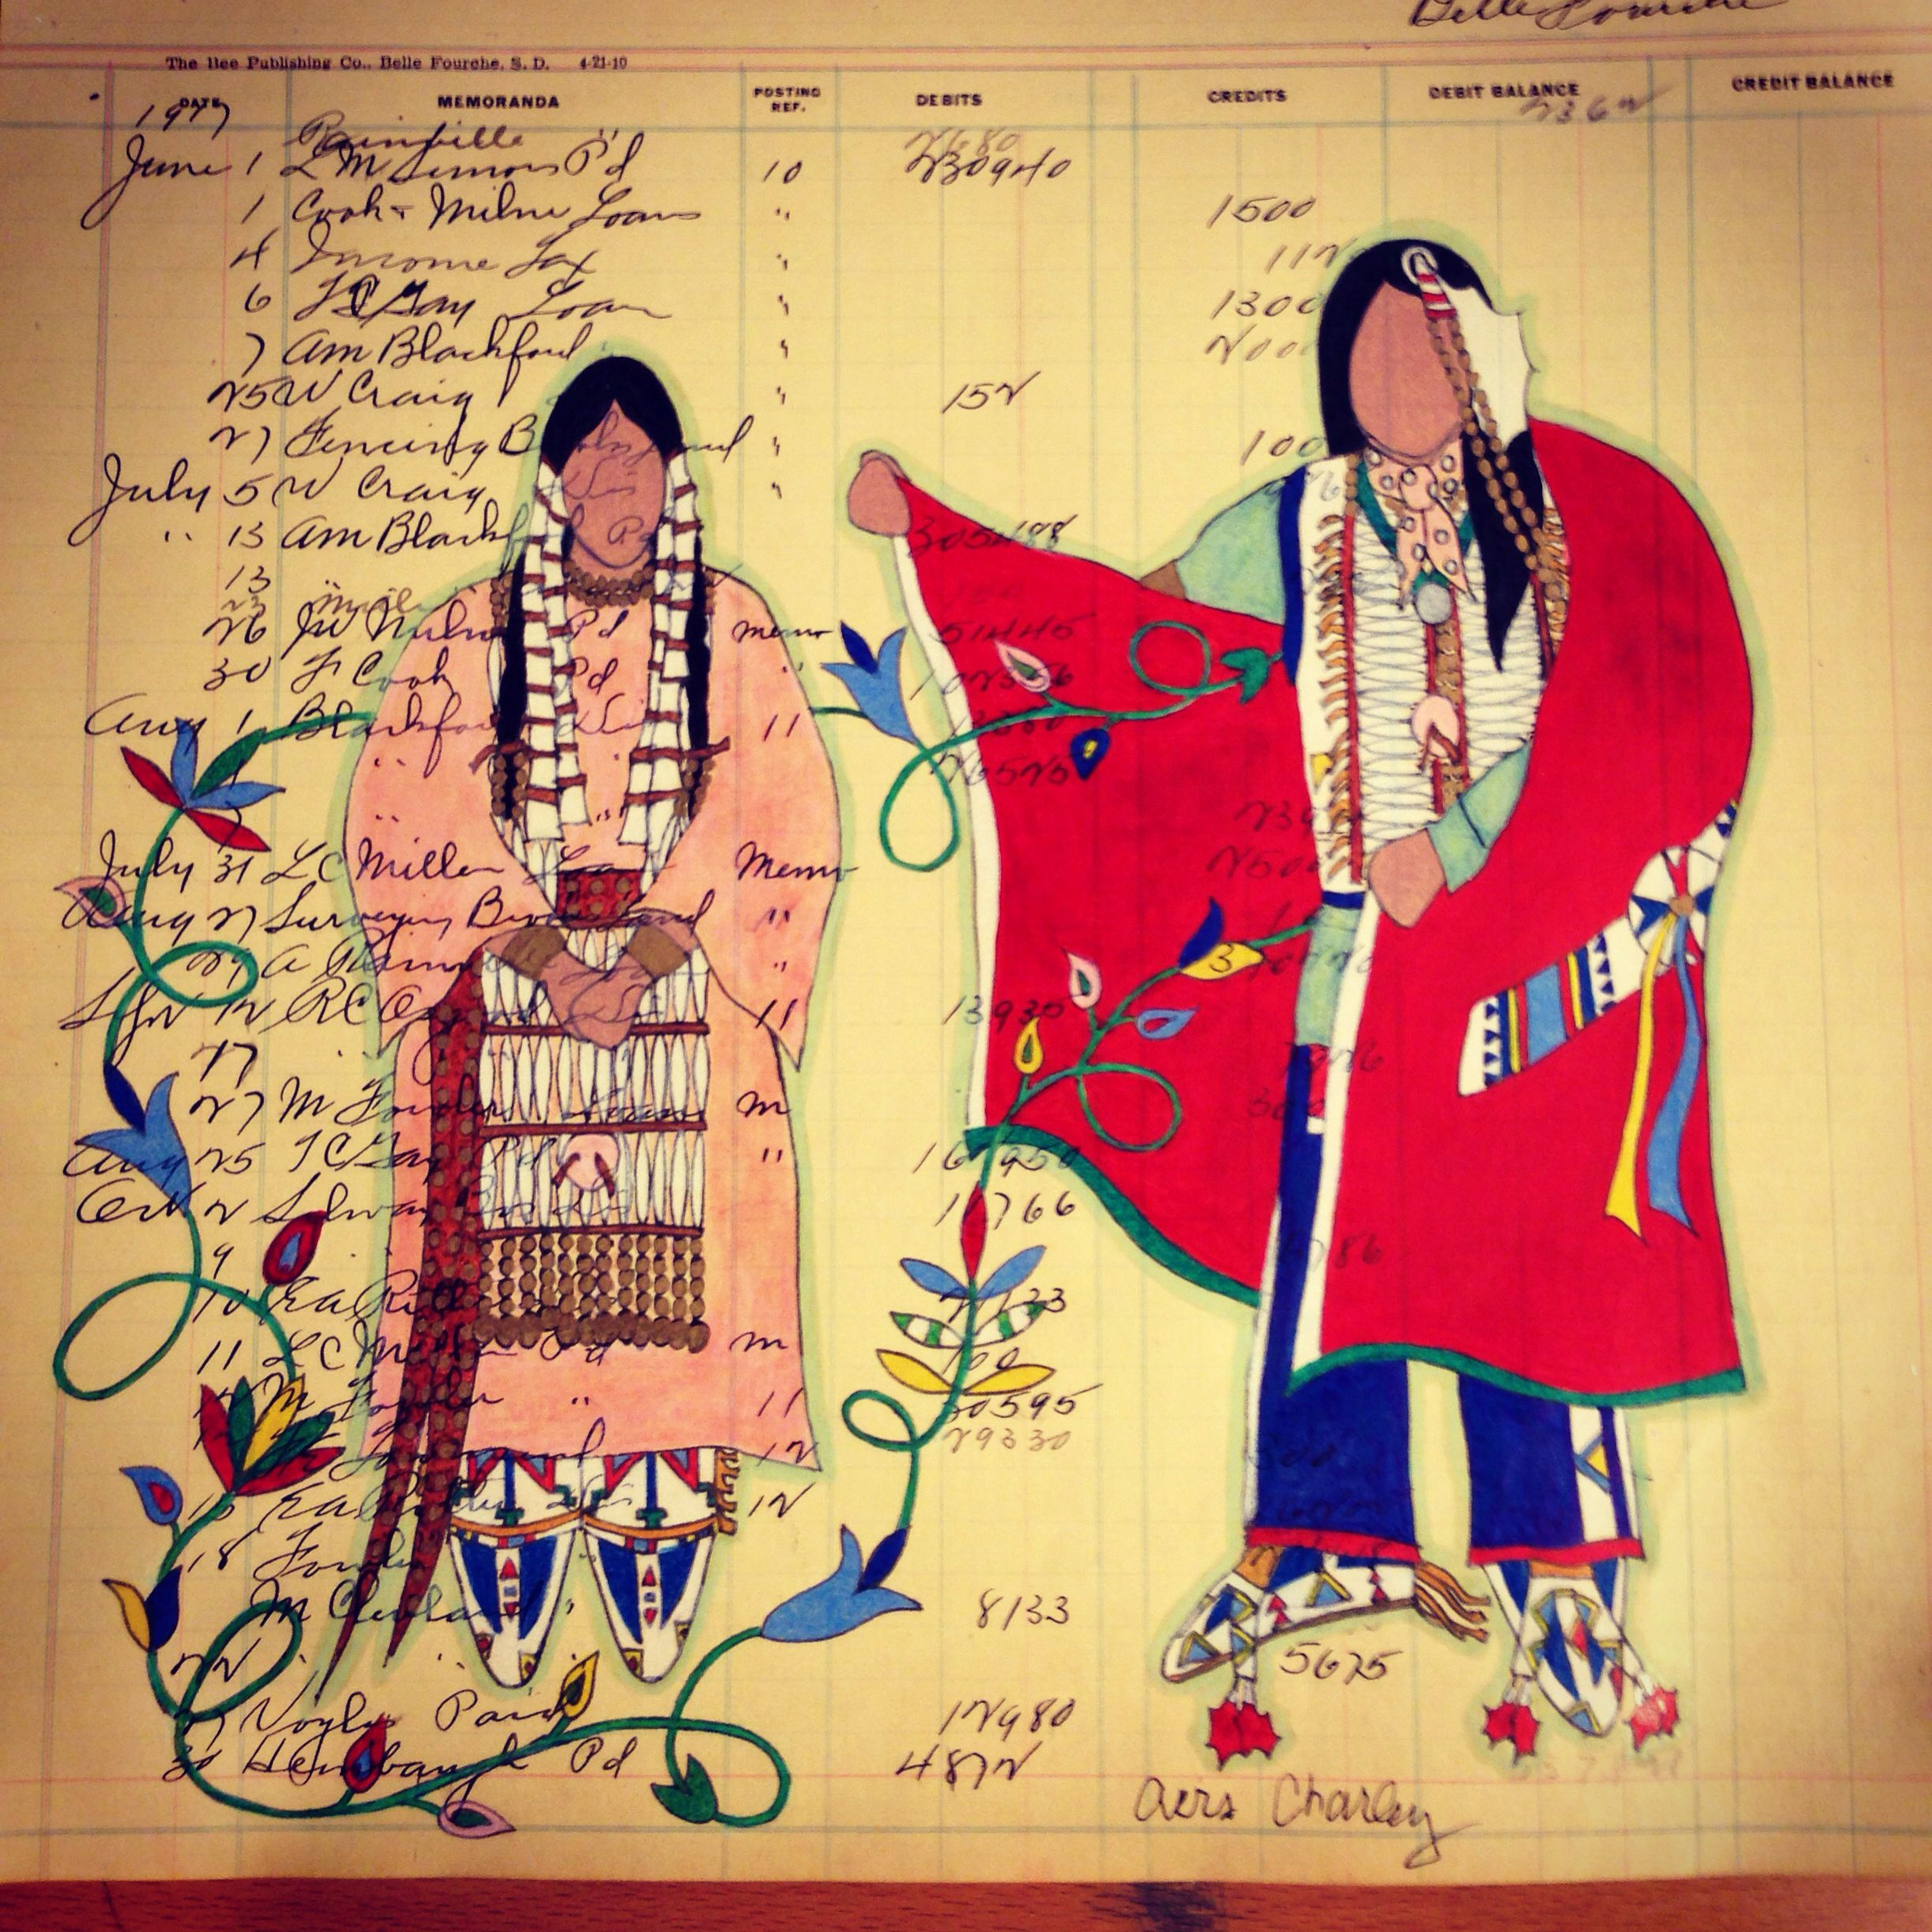 """Ledger Art by Avis Charley. """"Come Hither"""" depicts a courting scene."""